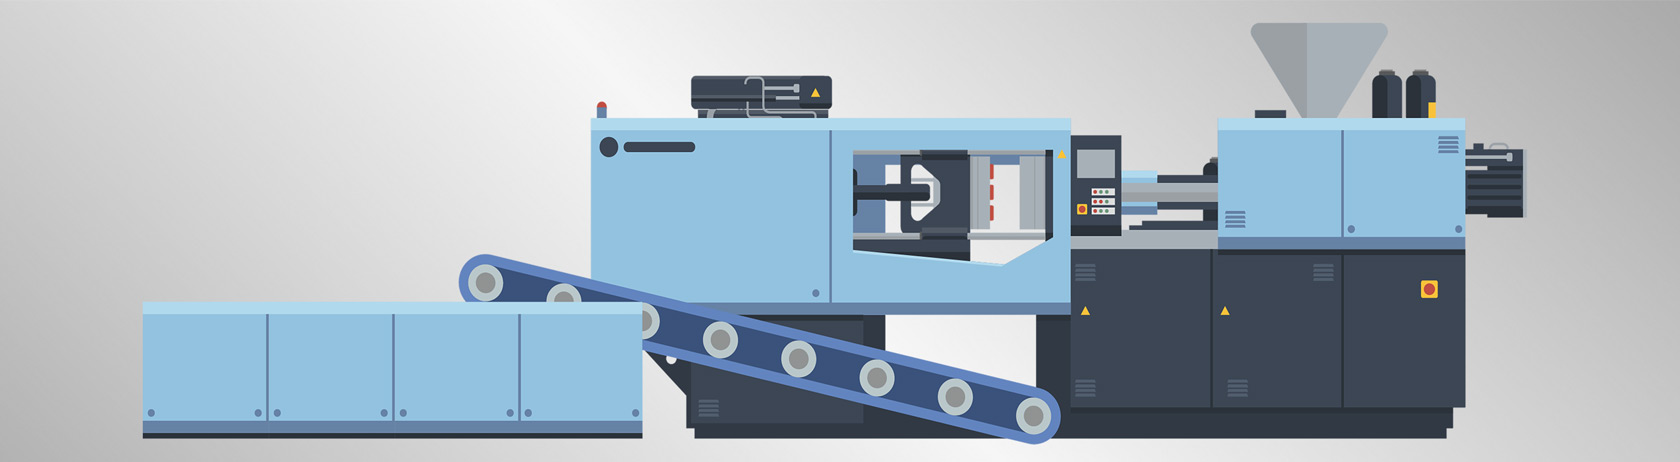 Injection molding is a complex process